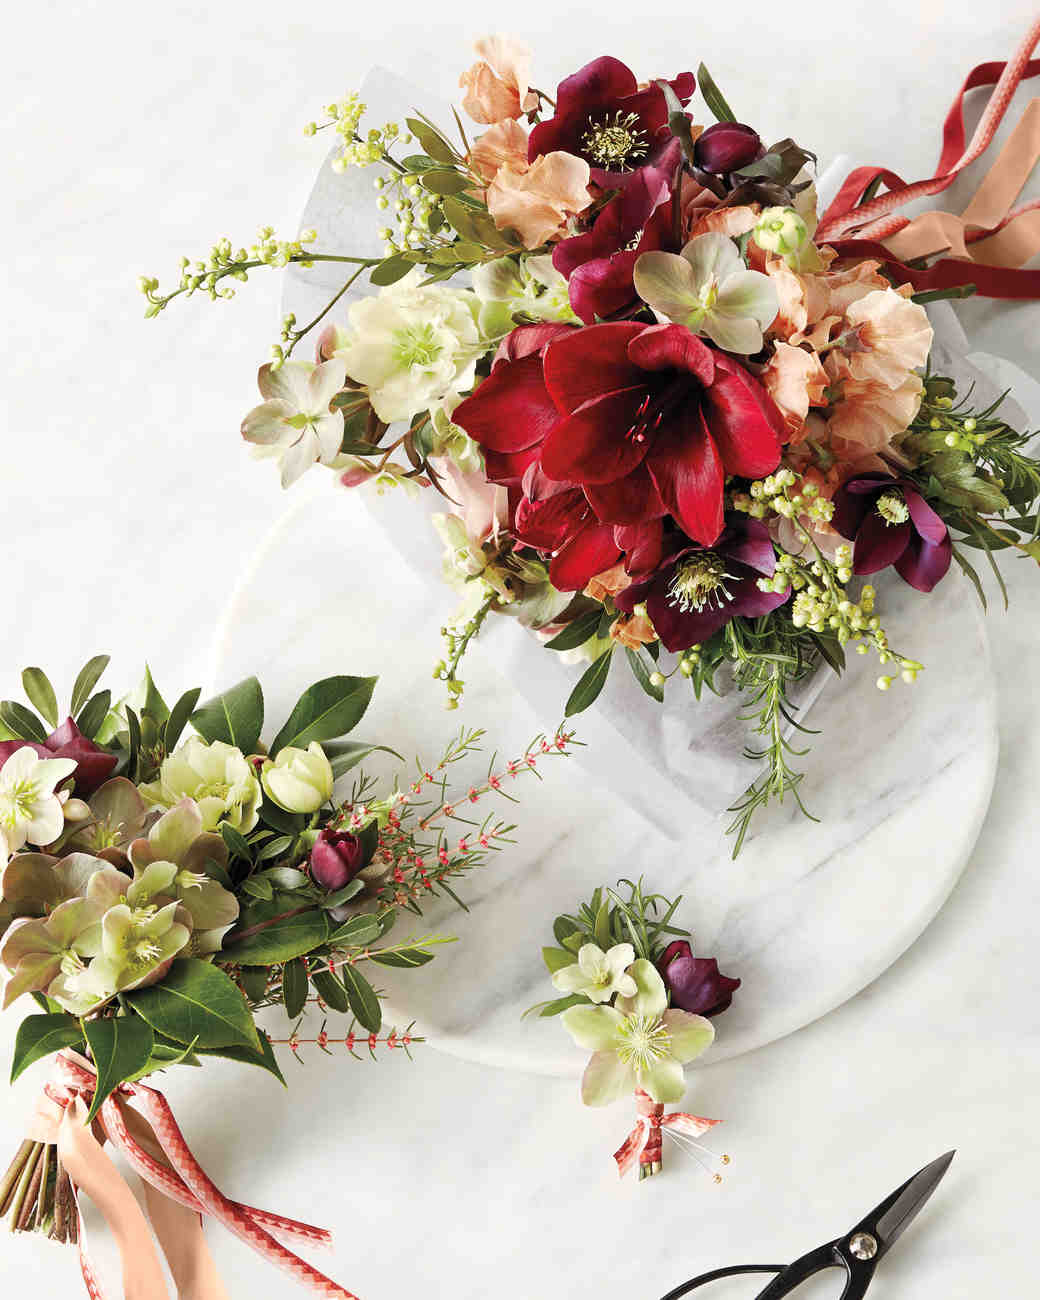 Flowers Wedding Ideas: 13 Genius Winter Wedding Flower Ideas From Pro Florists